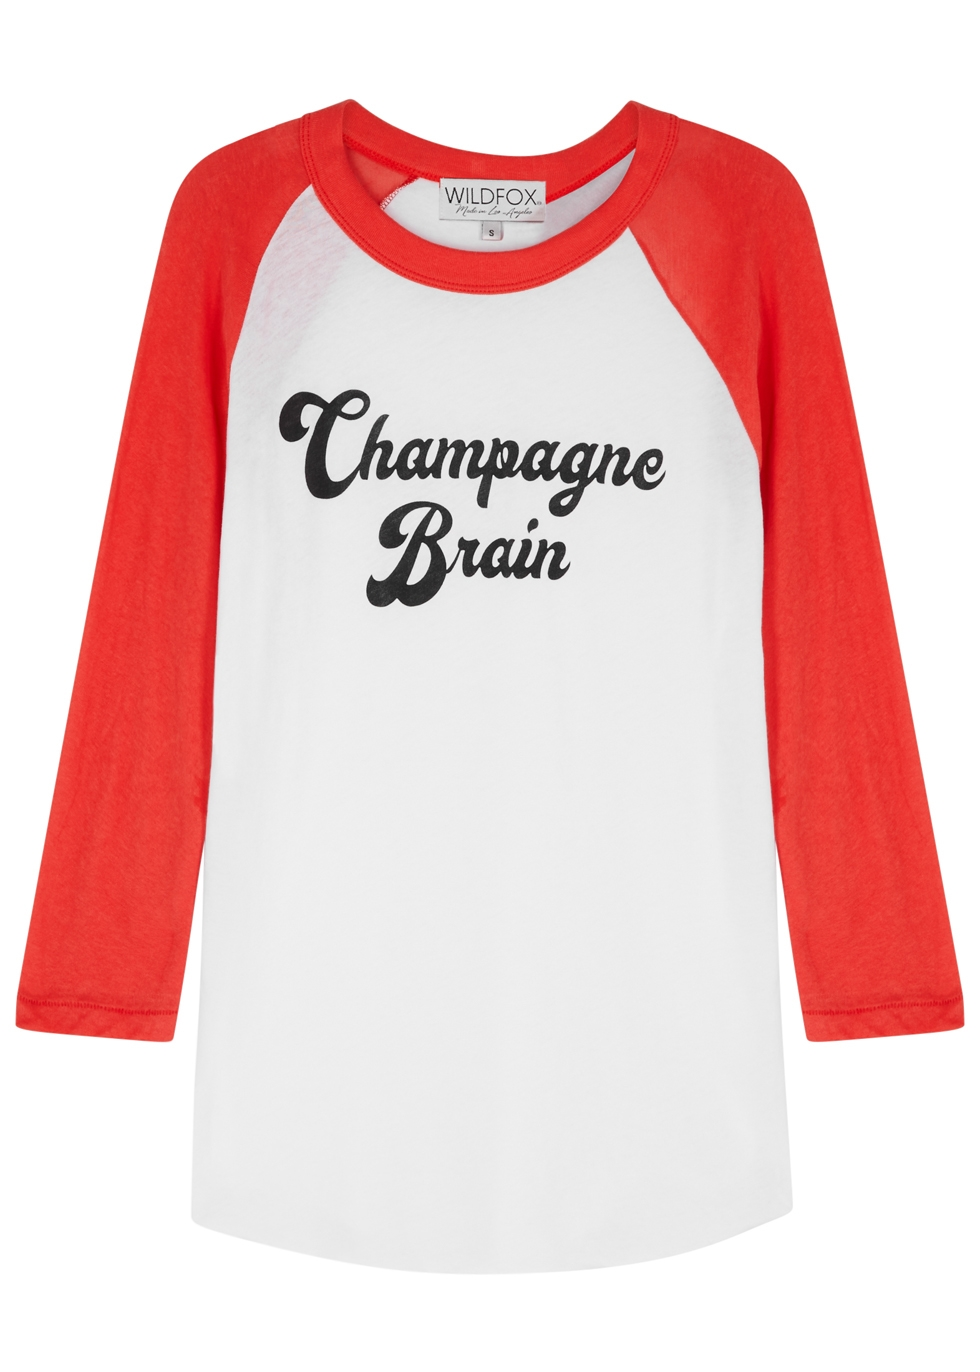 WILDFOX Champagne Cotton Baseball Tee in White